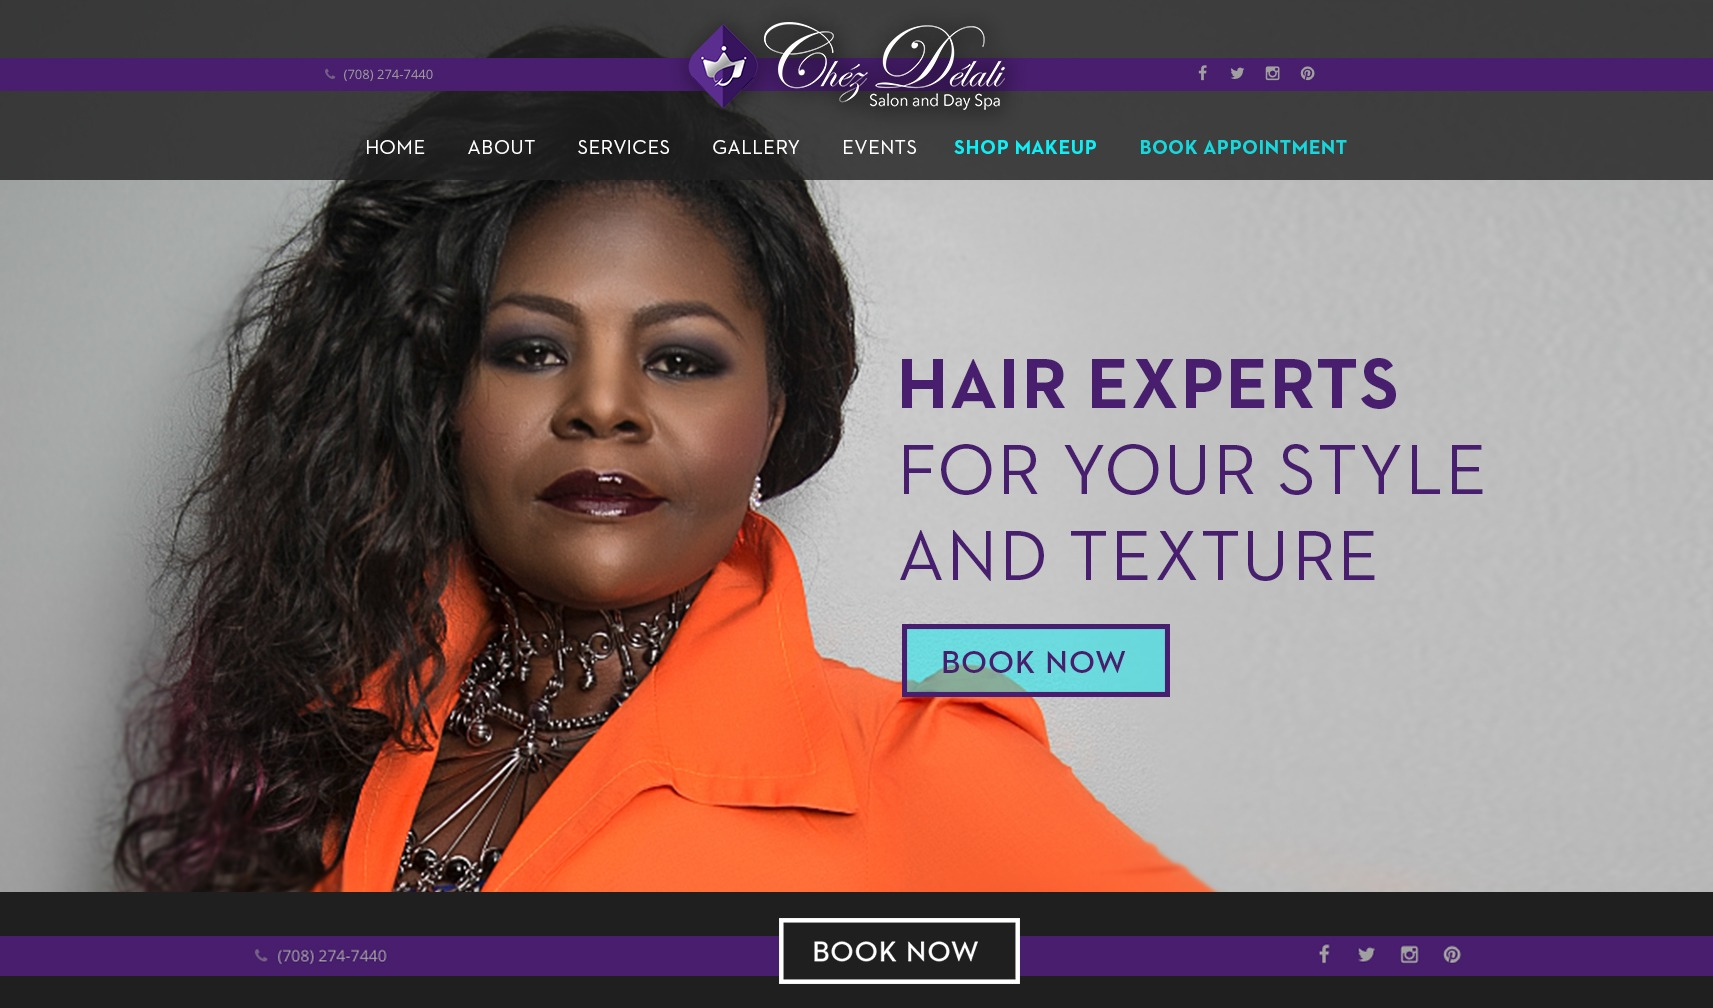 ChezDelali_Book Your Hair, Chicago Hair Salon